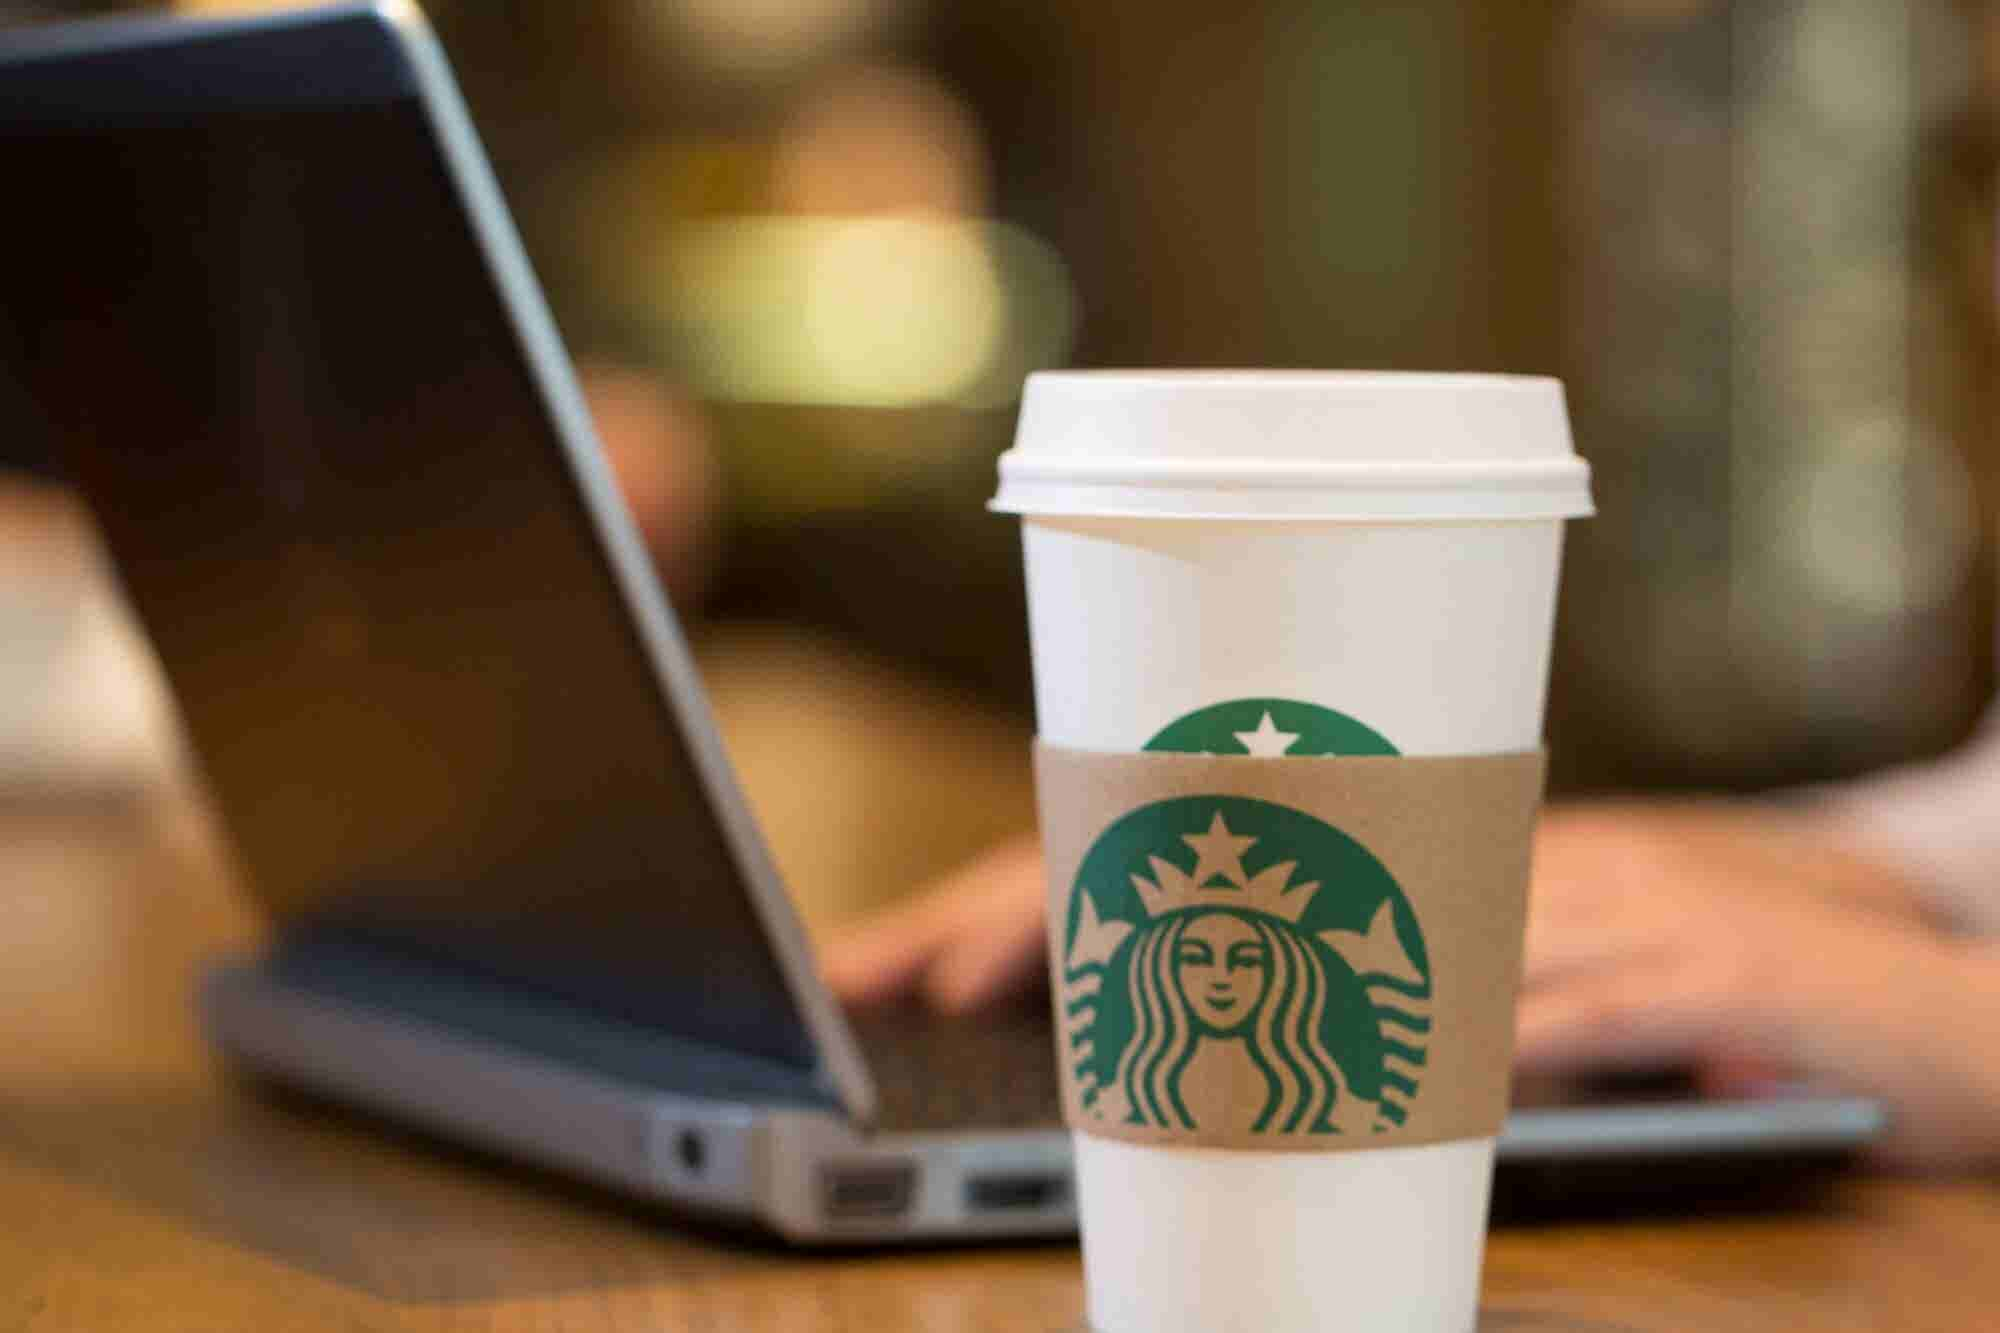 In Retaliation for Blocking Pornography, Adult Website Bans Starbucks From Offices